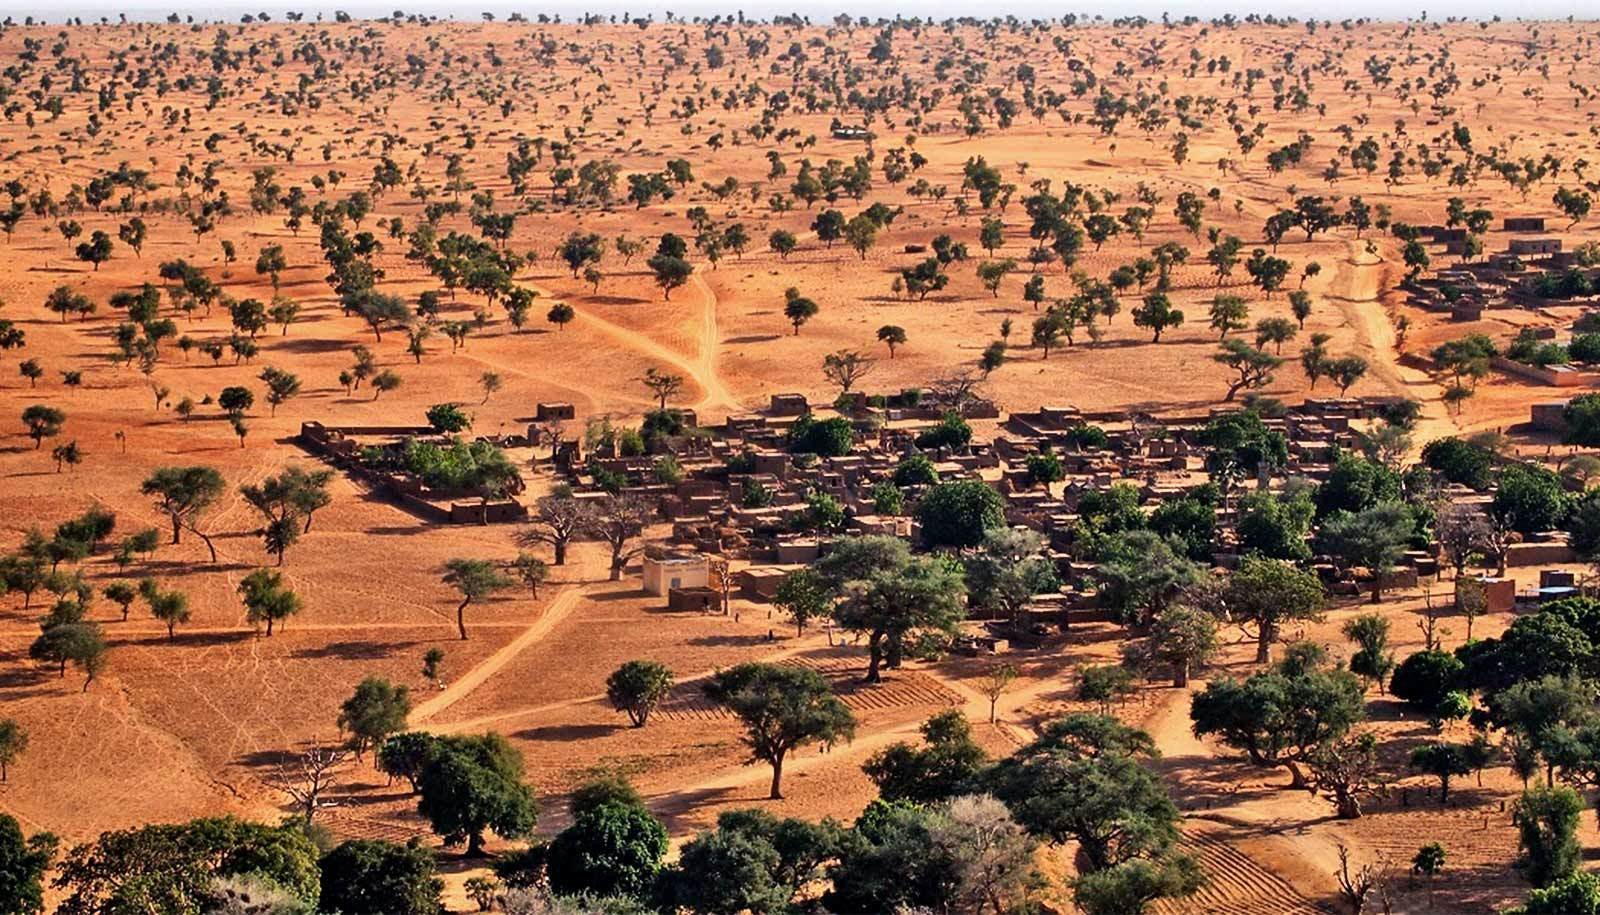 AI has just revealed there are over 1.8 billion trees in the Sahara Desert